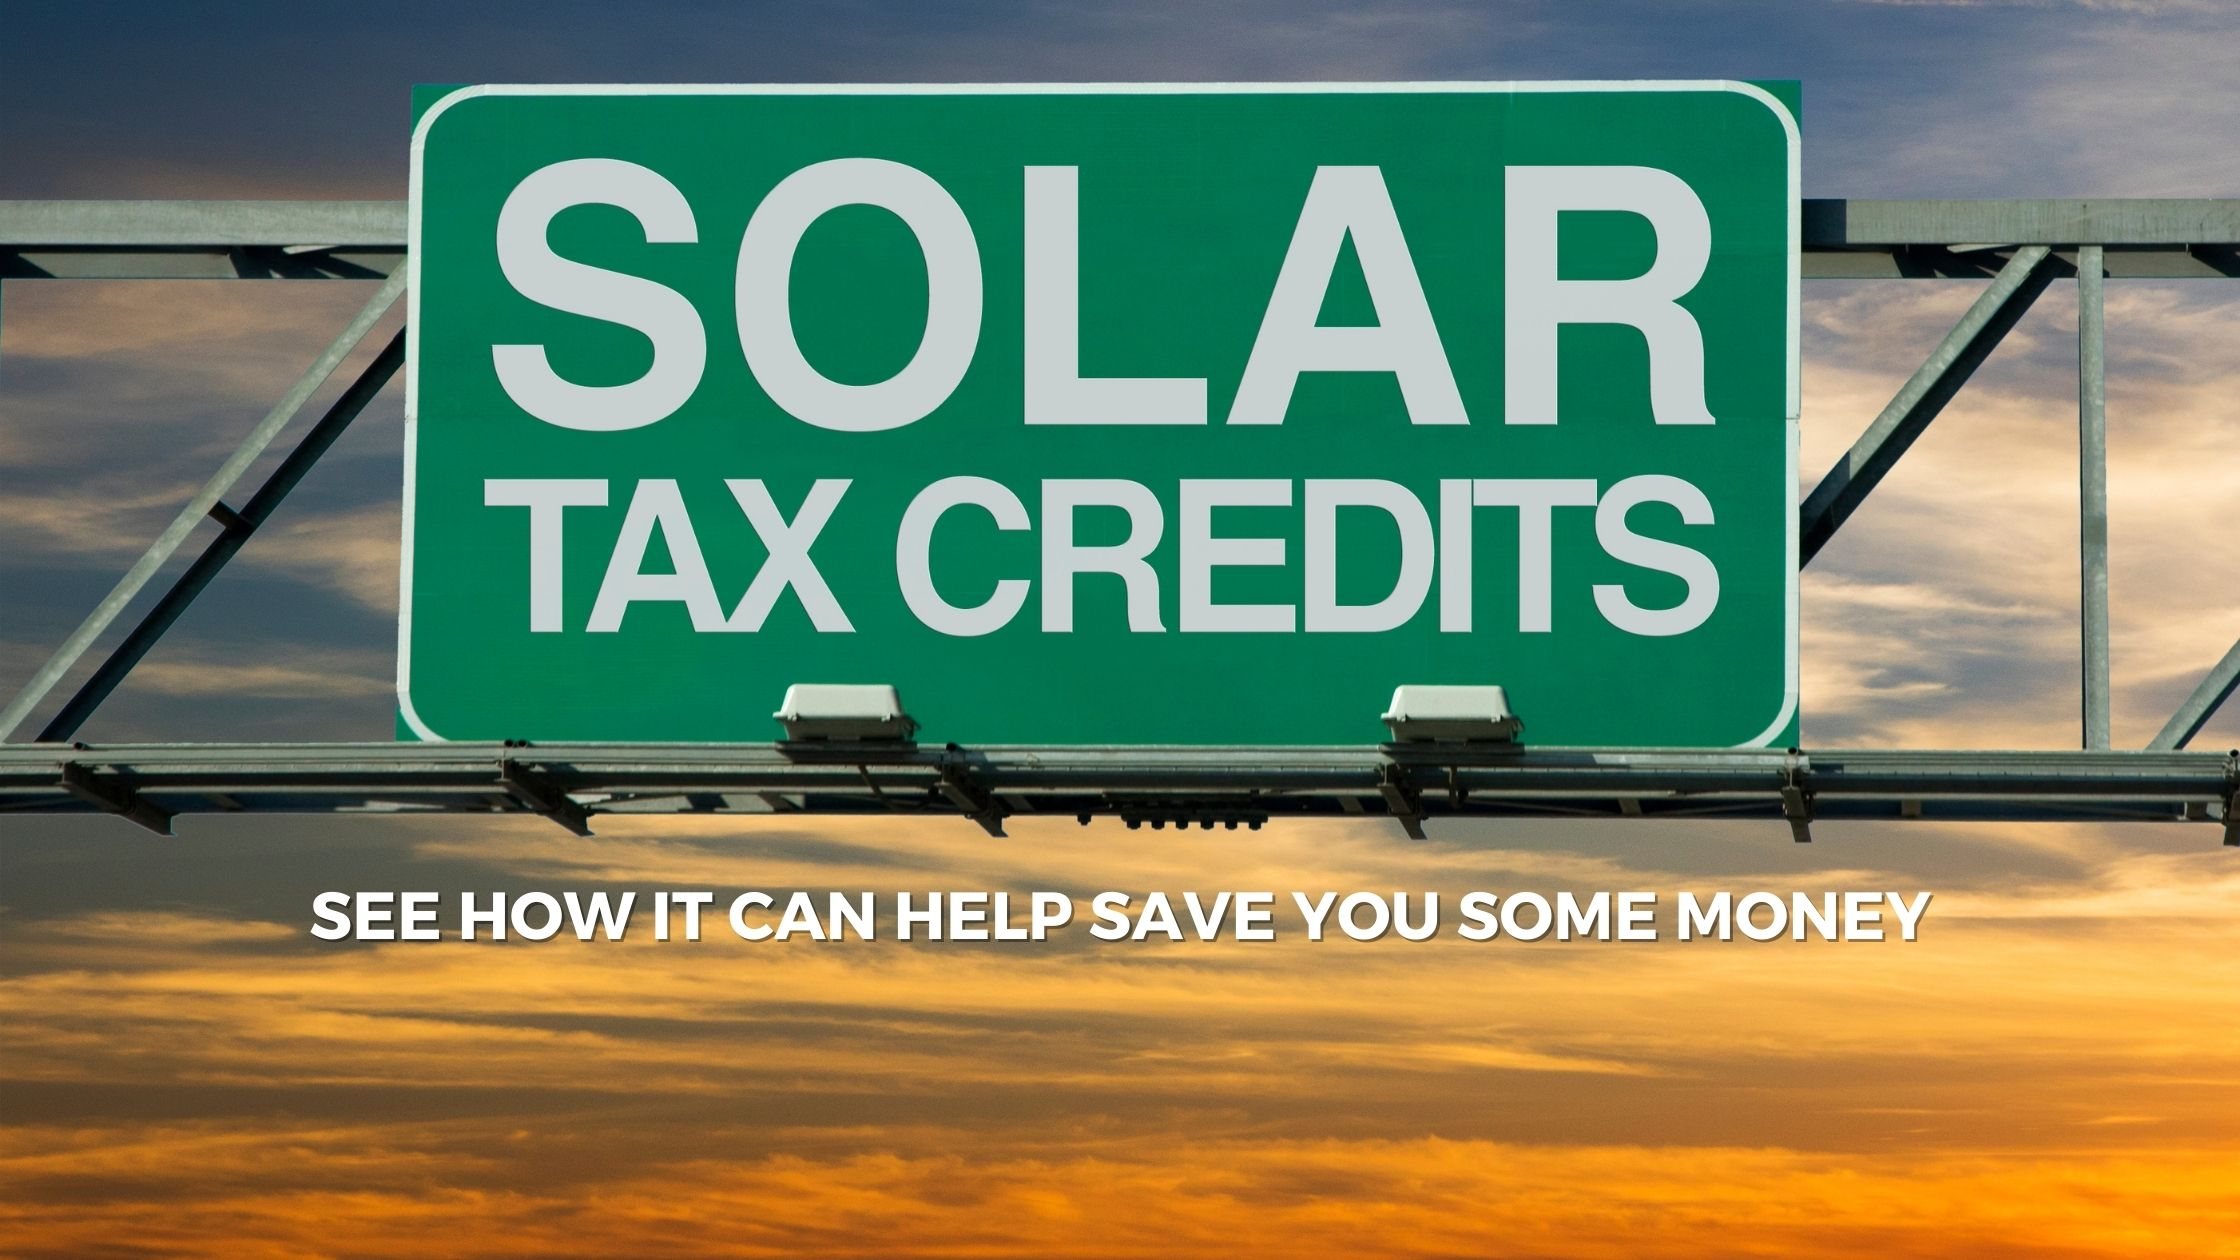 Solar Tax Credits to Save You Money